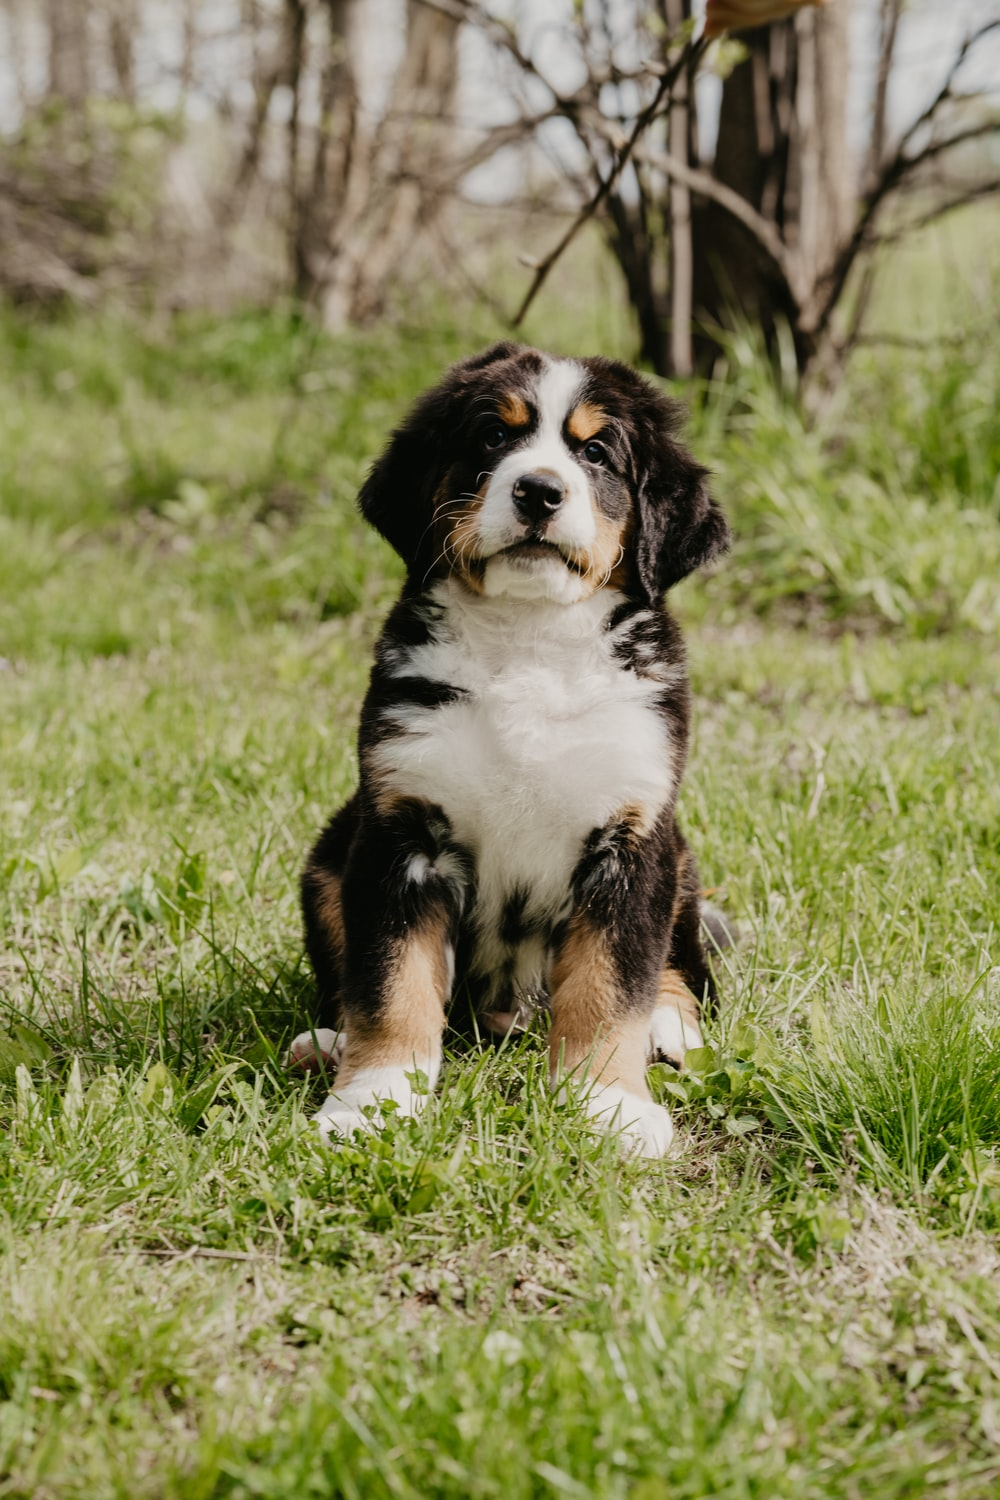 tricolor bernese mountain dog lying on green grass during daytime